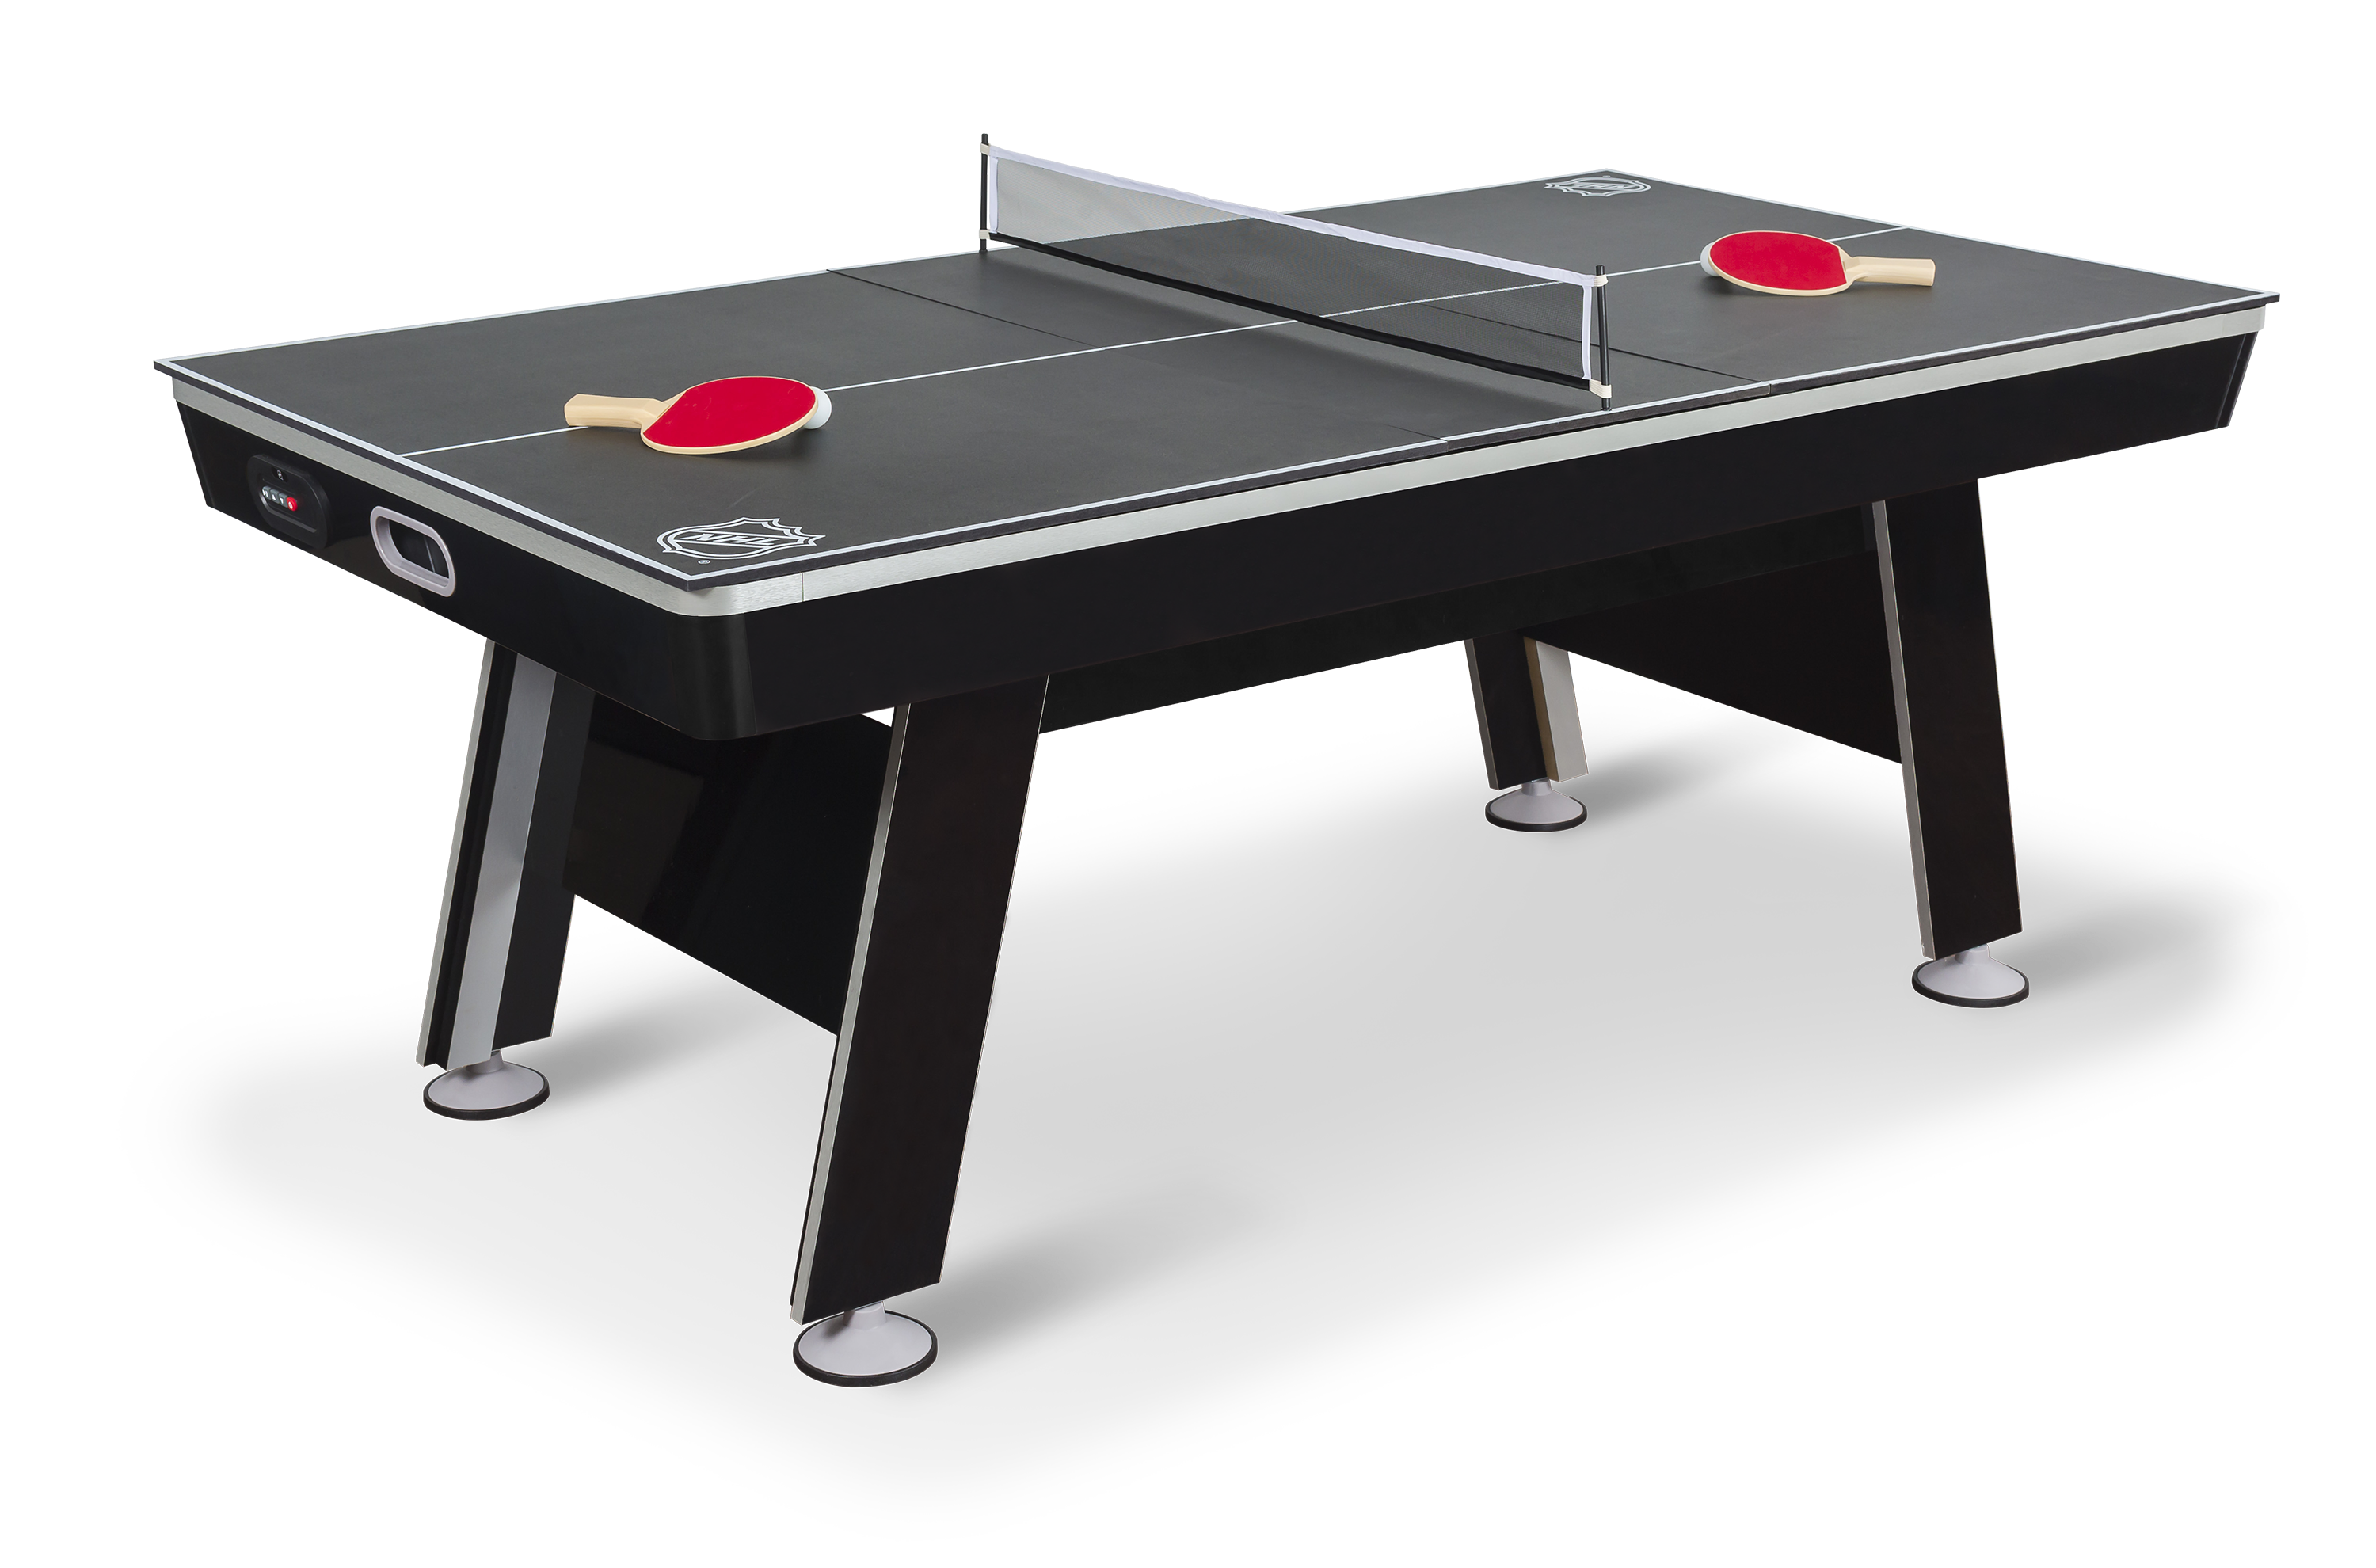 Eastpoint Sports 80 Nhl Air Ed Hover Hockey Table With Tennis Top